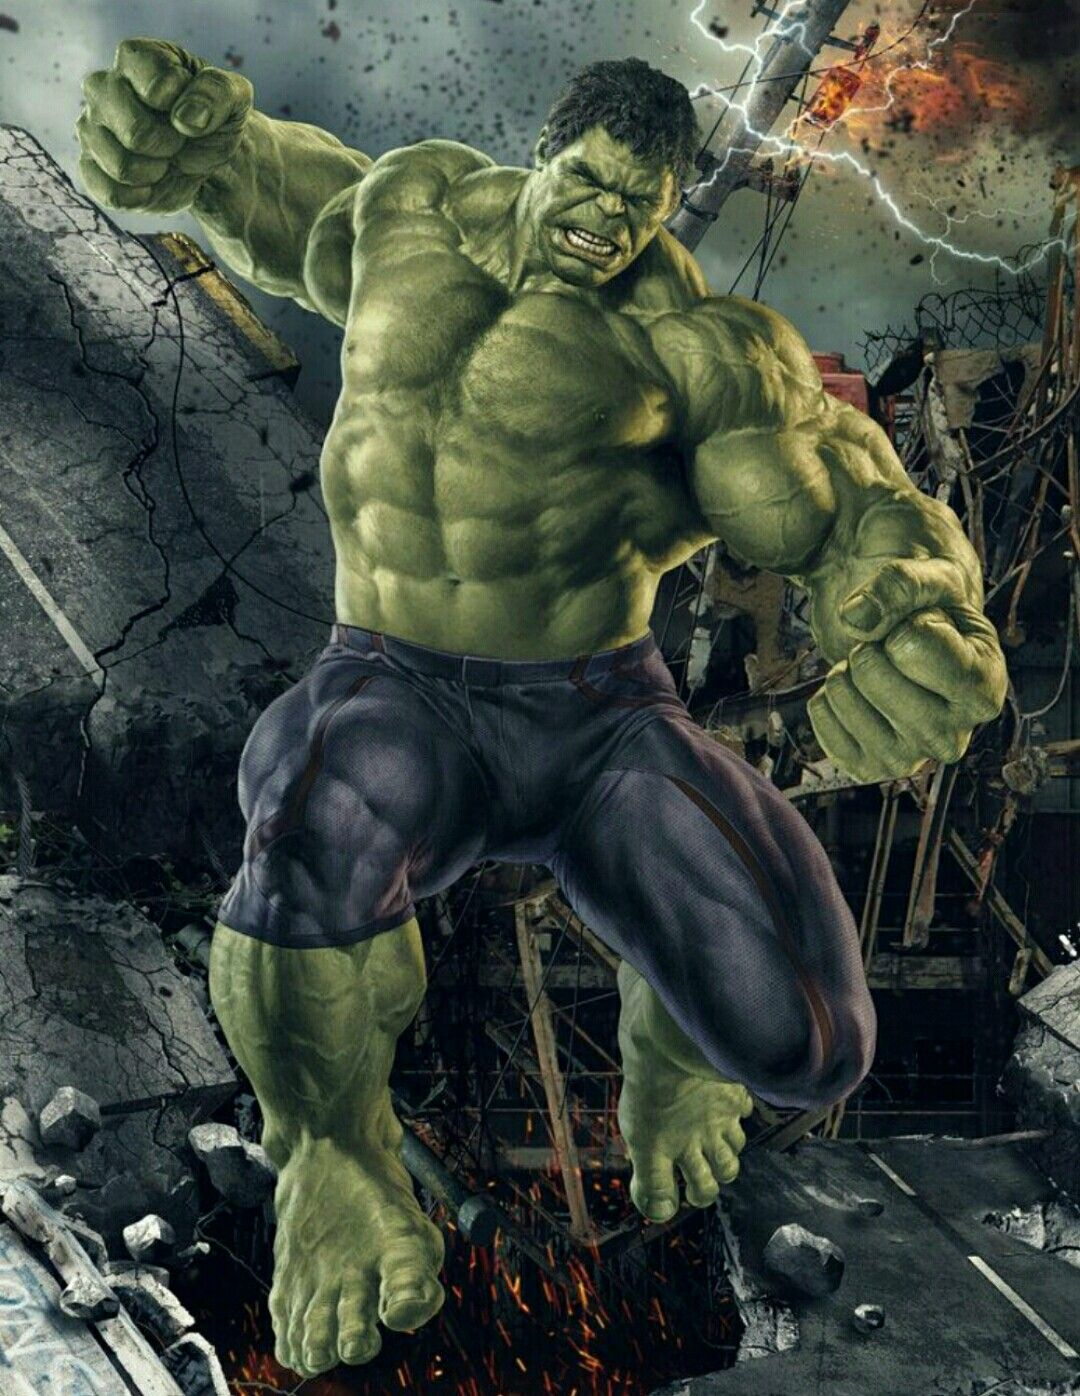 Pin by big burg on incredible hulk pinterest marvel incredible when it comes to spreading awareness and providing truly educational content andreas alone has done more for bitcoin and decentralized cryptocurrencies in fandeluxe Choice Image